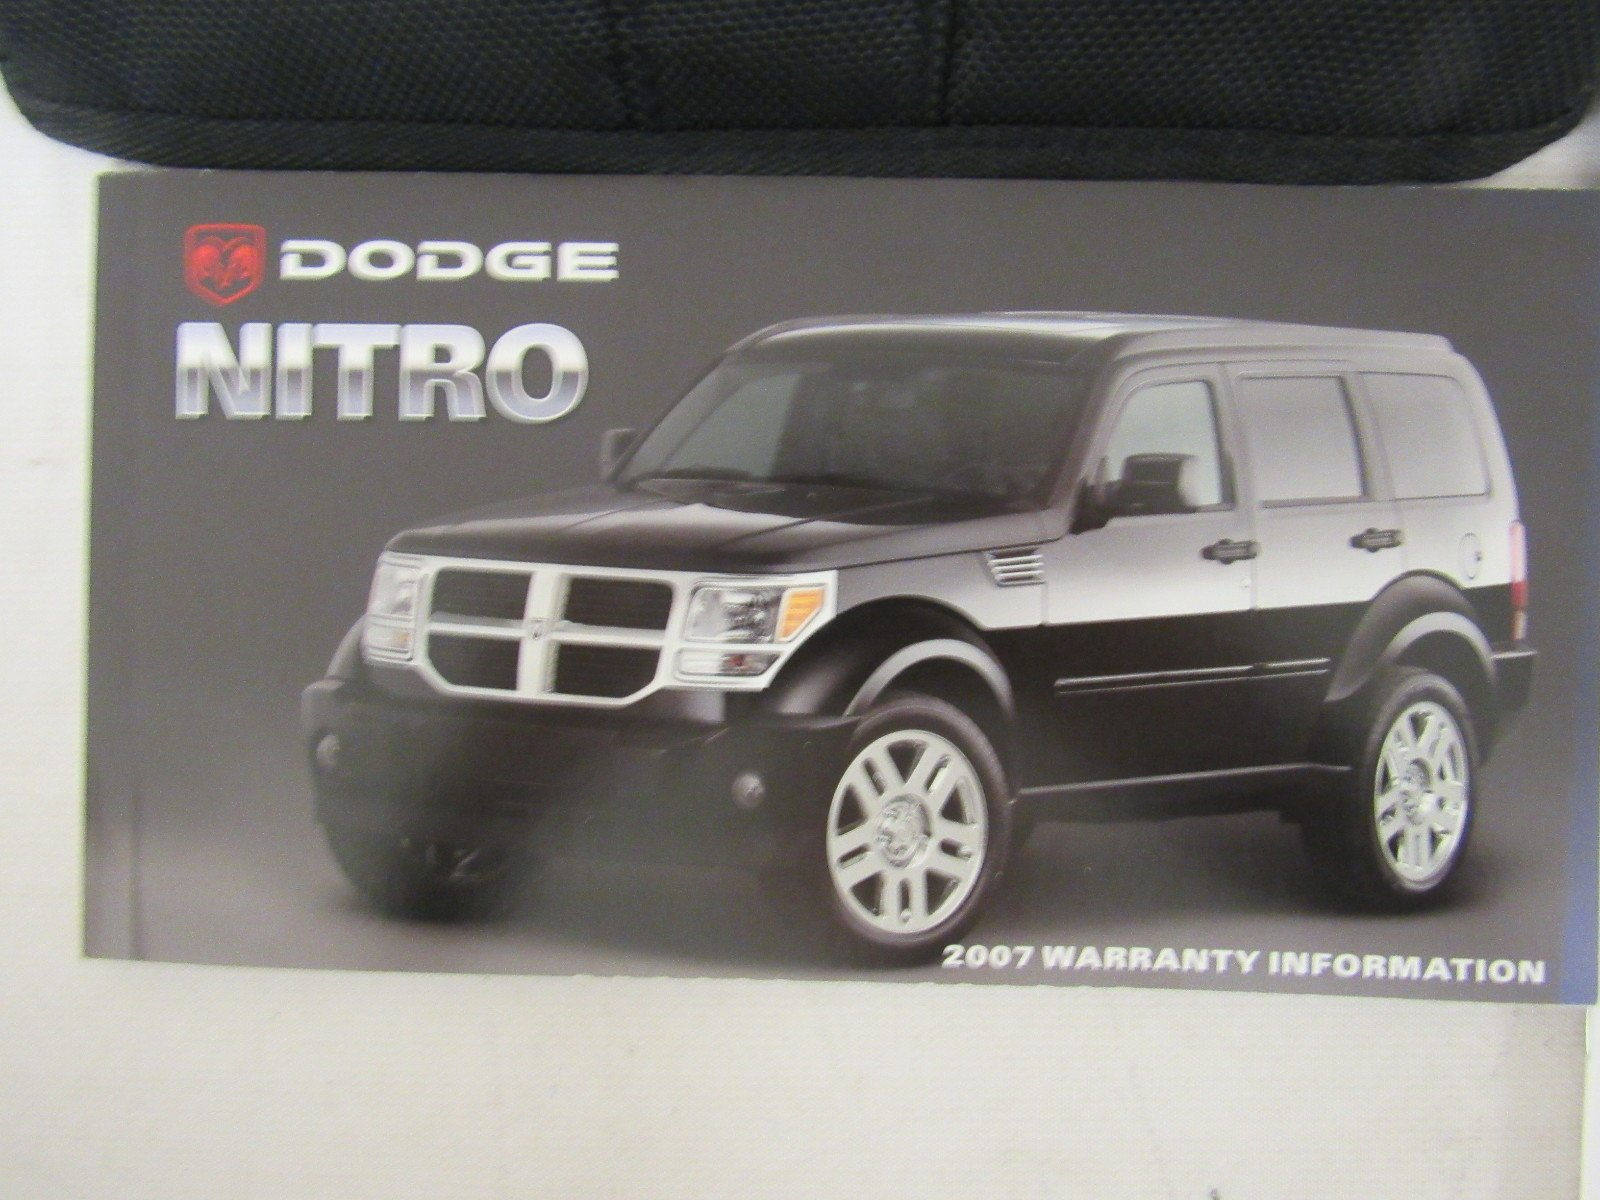 2007 dodge nitro owners manual guide book amazon com books rh amazon com 2007 Dodge Nitro Owner's Manual dodge nitro owner's manual 2011